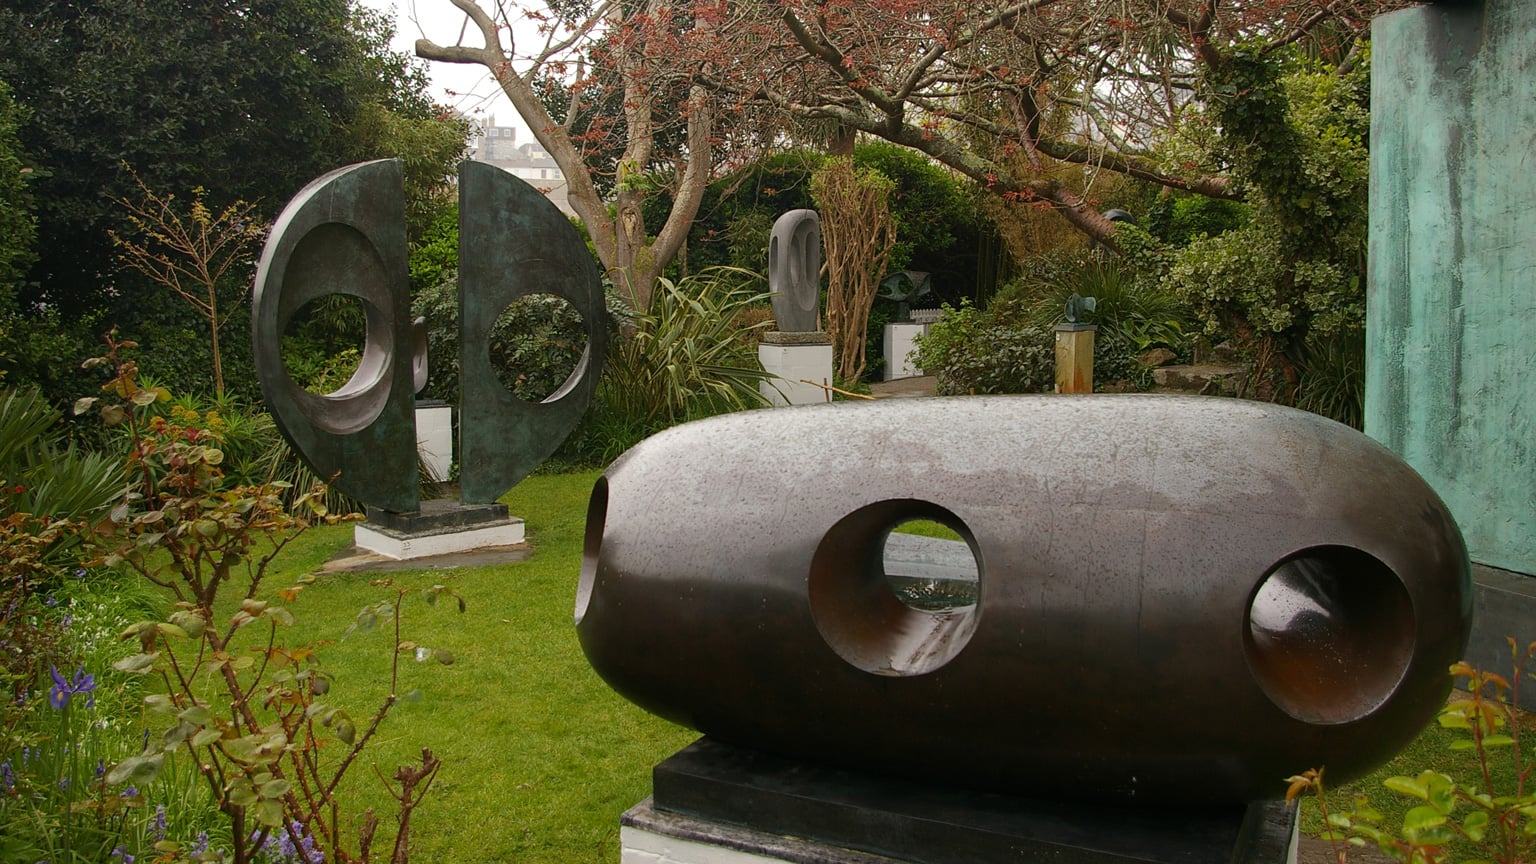 3. Barbara Hepworth Museum and Sculpture Garden in Cornwall - 50% off entry with National Art Pass